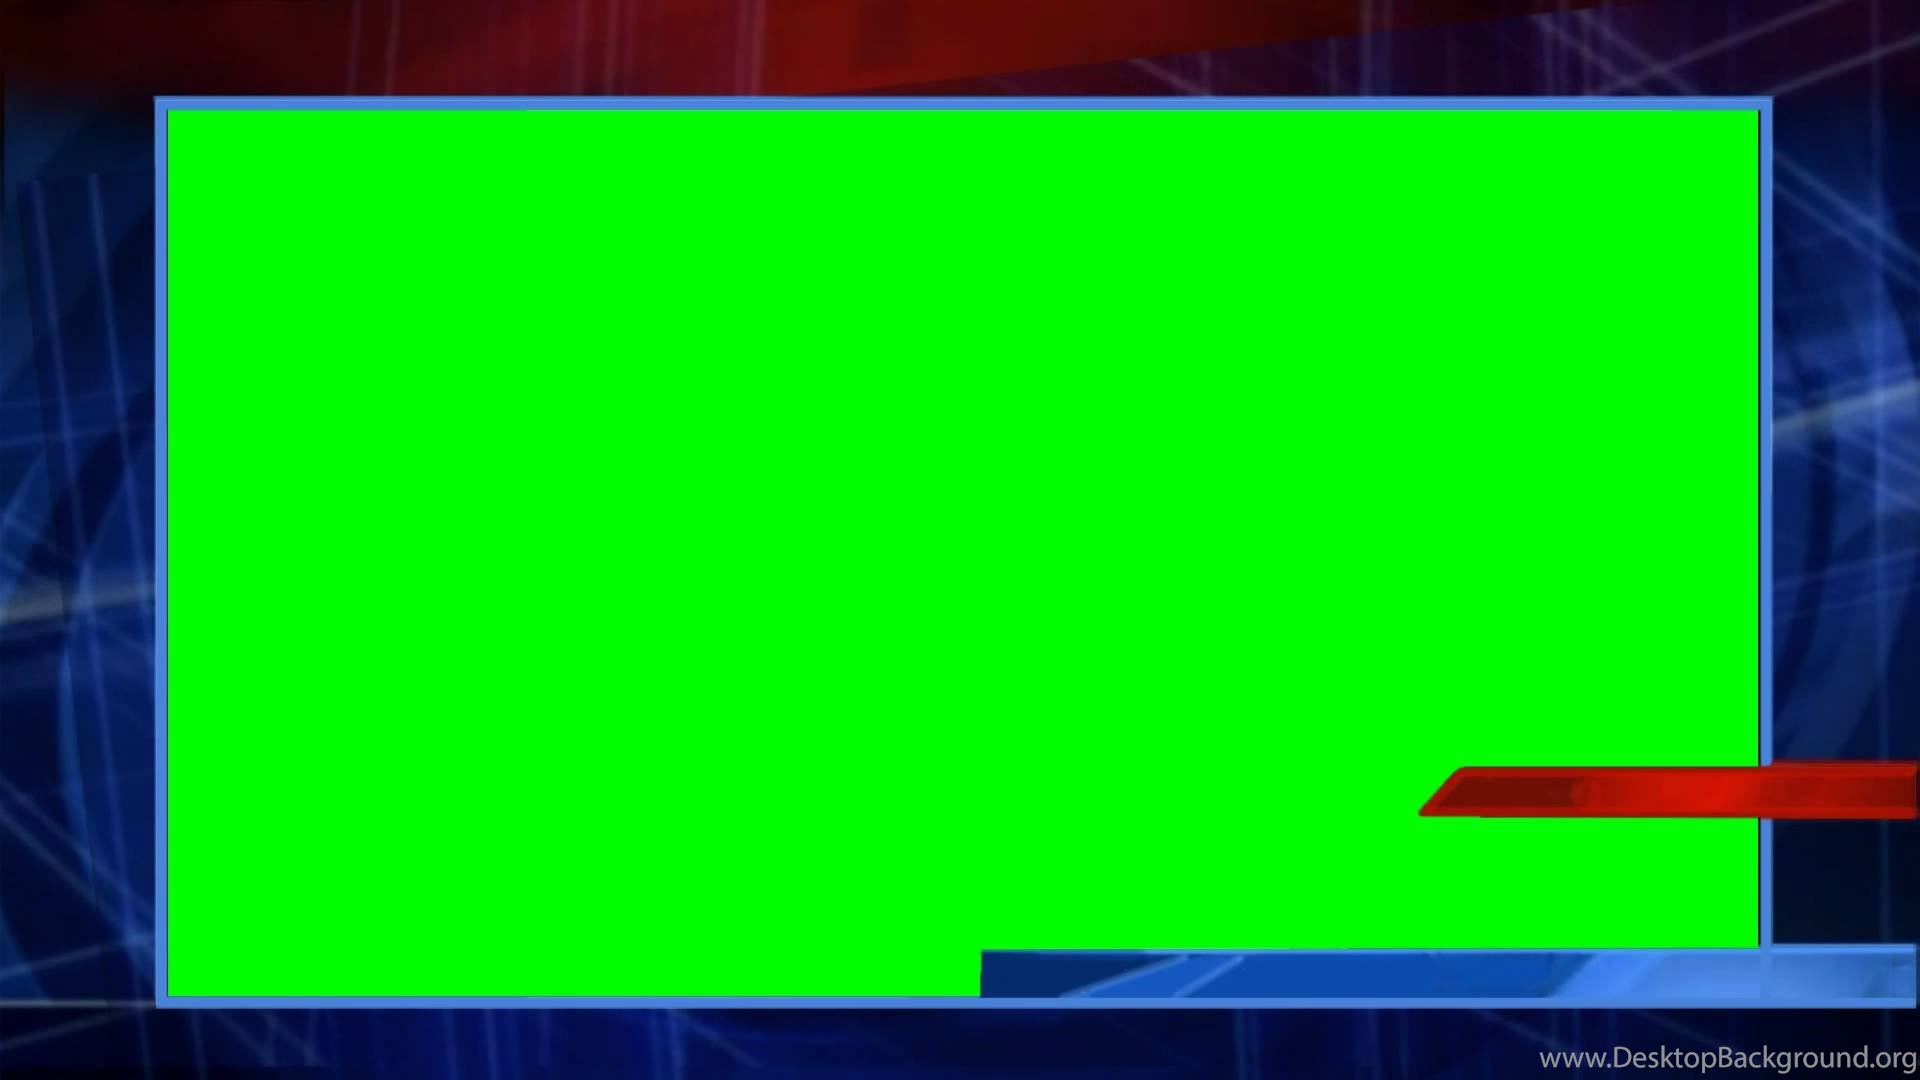 Iphone X Wallpaper Size Overlay News Overlay Green Screen Free Backgrounds Video 1080p Hd